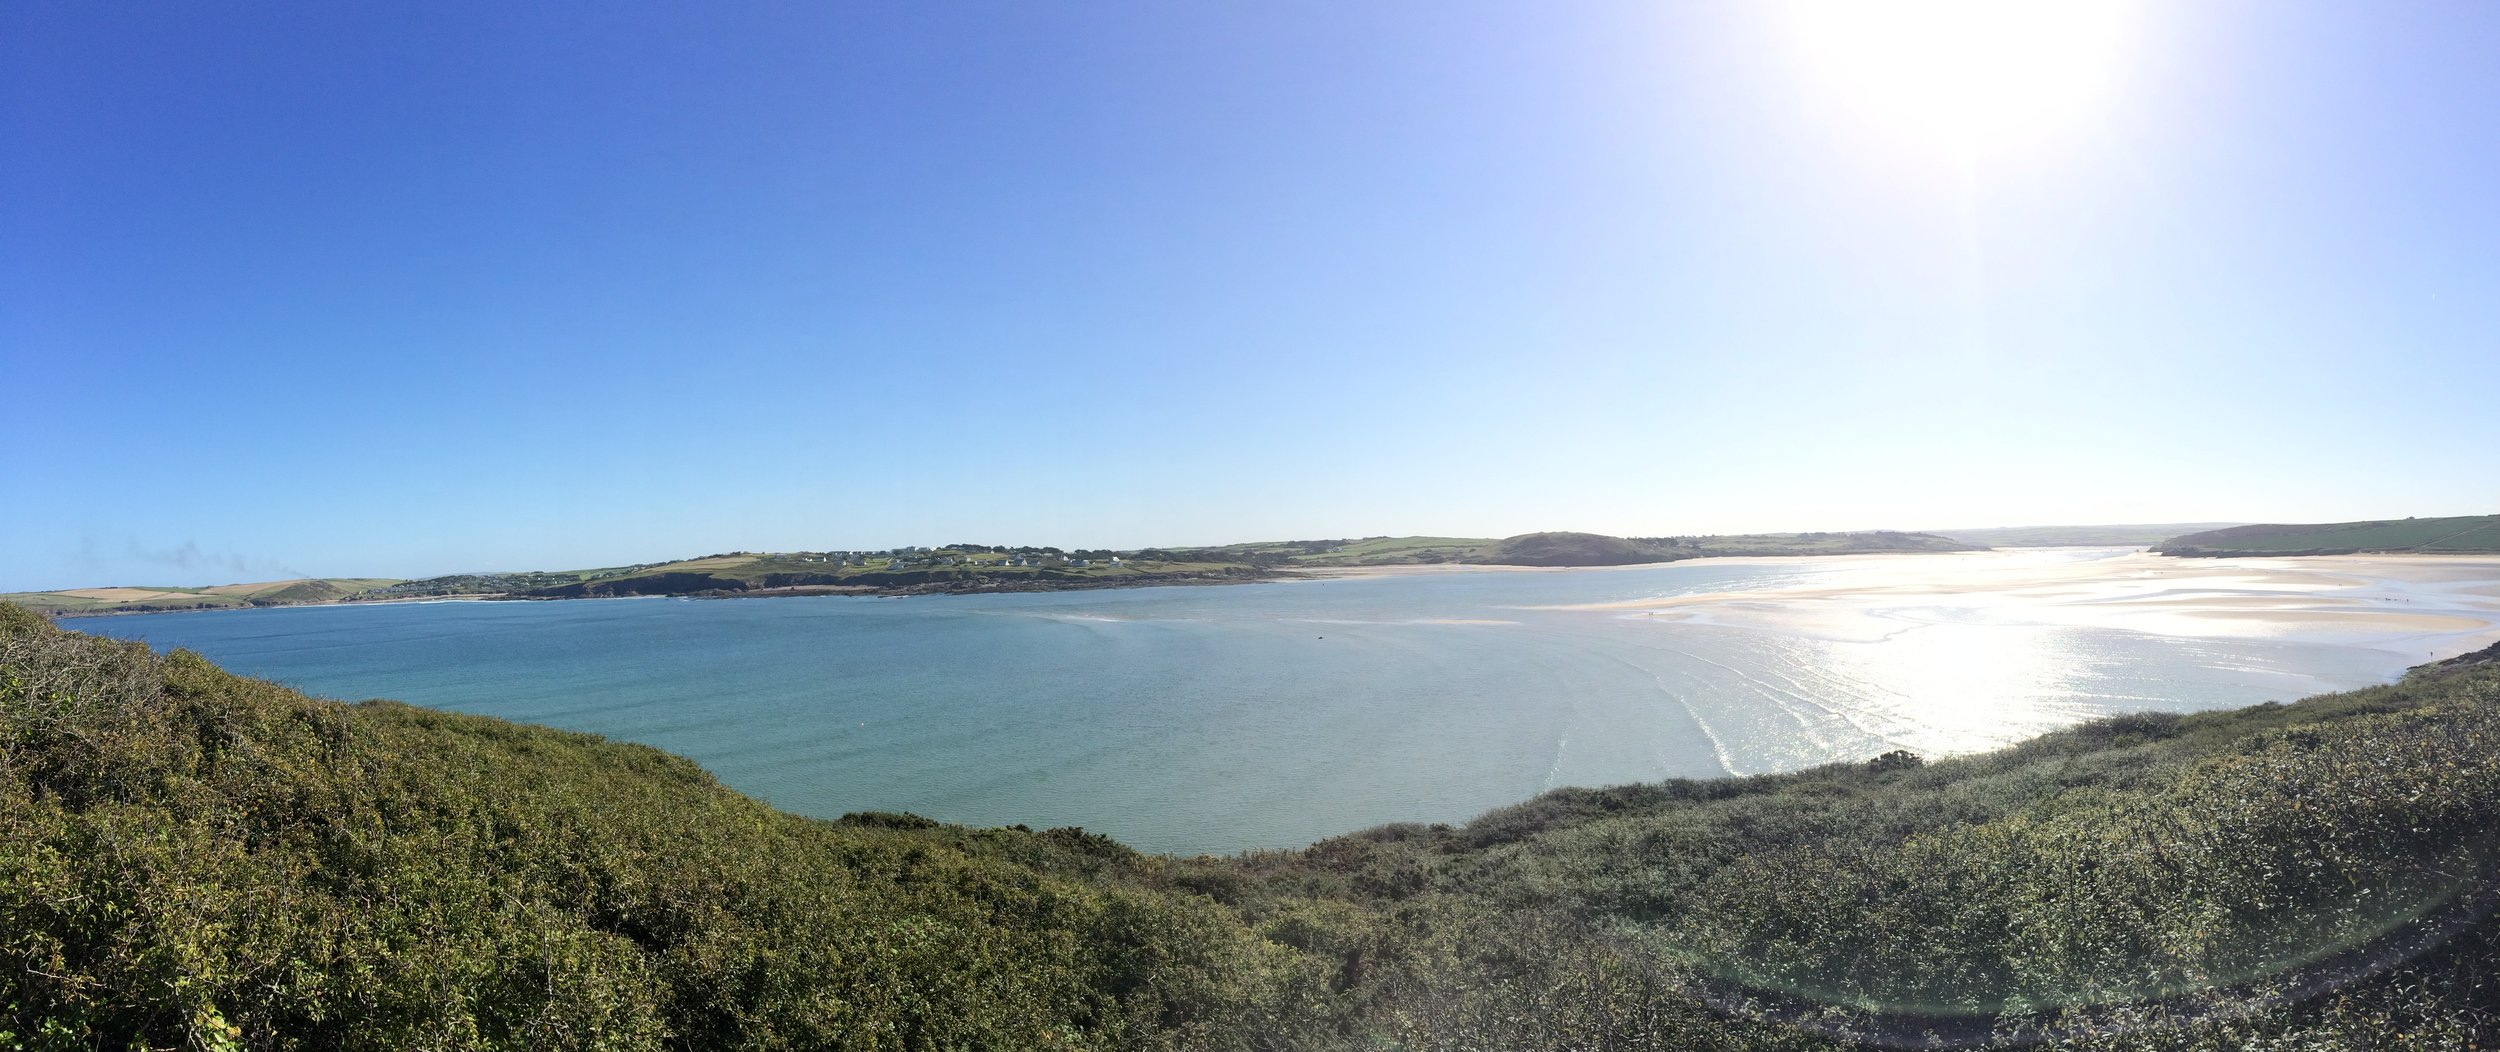 The view of the Camel Estuary from Stepper Point